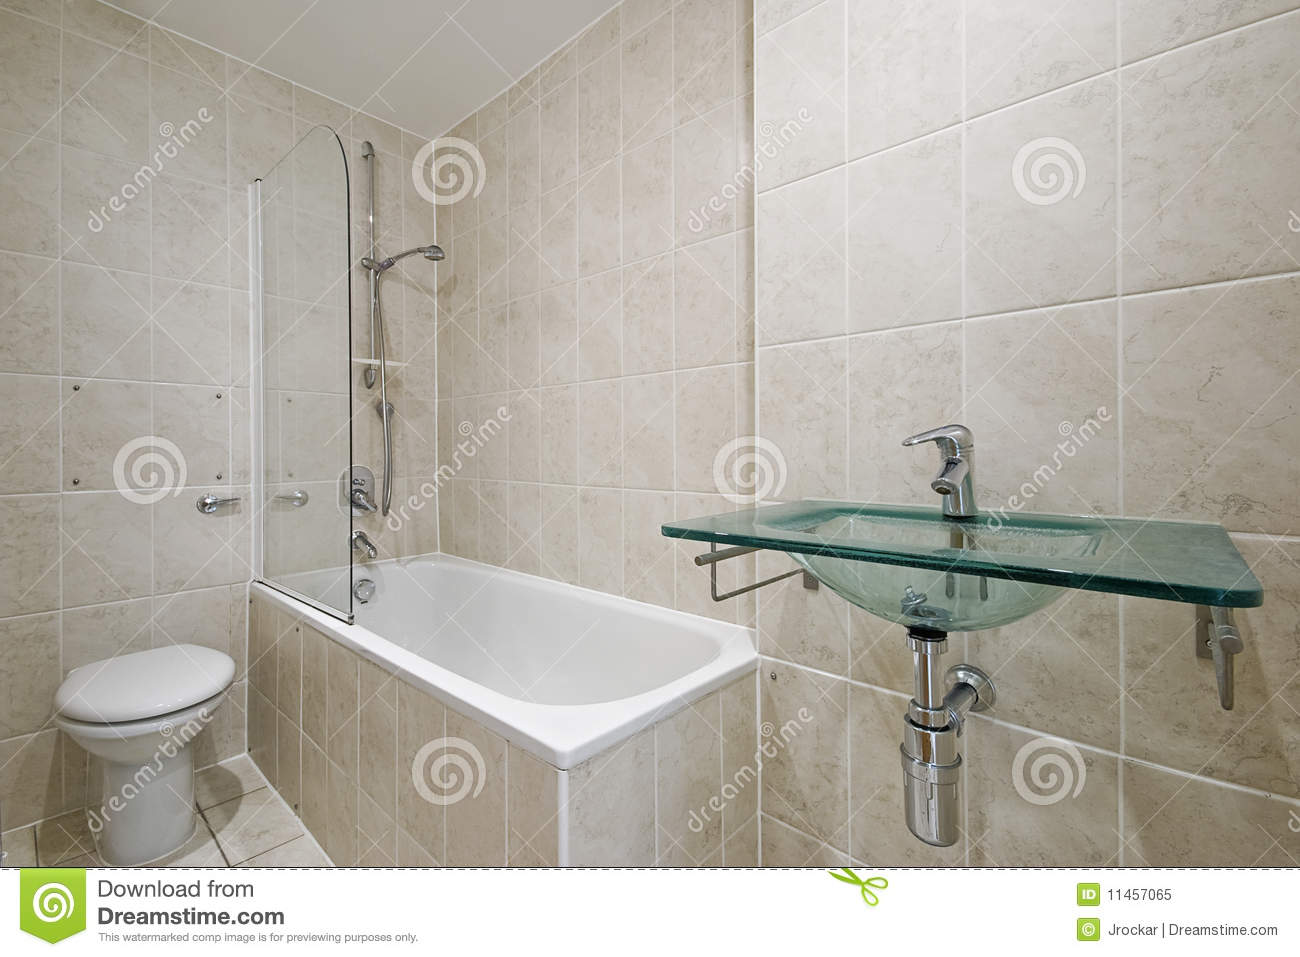 Tile Bathroom Ceiling Pictures bathroom with floor to ceiling tiles royalty free stock photo